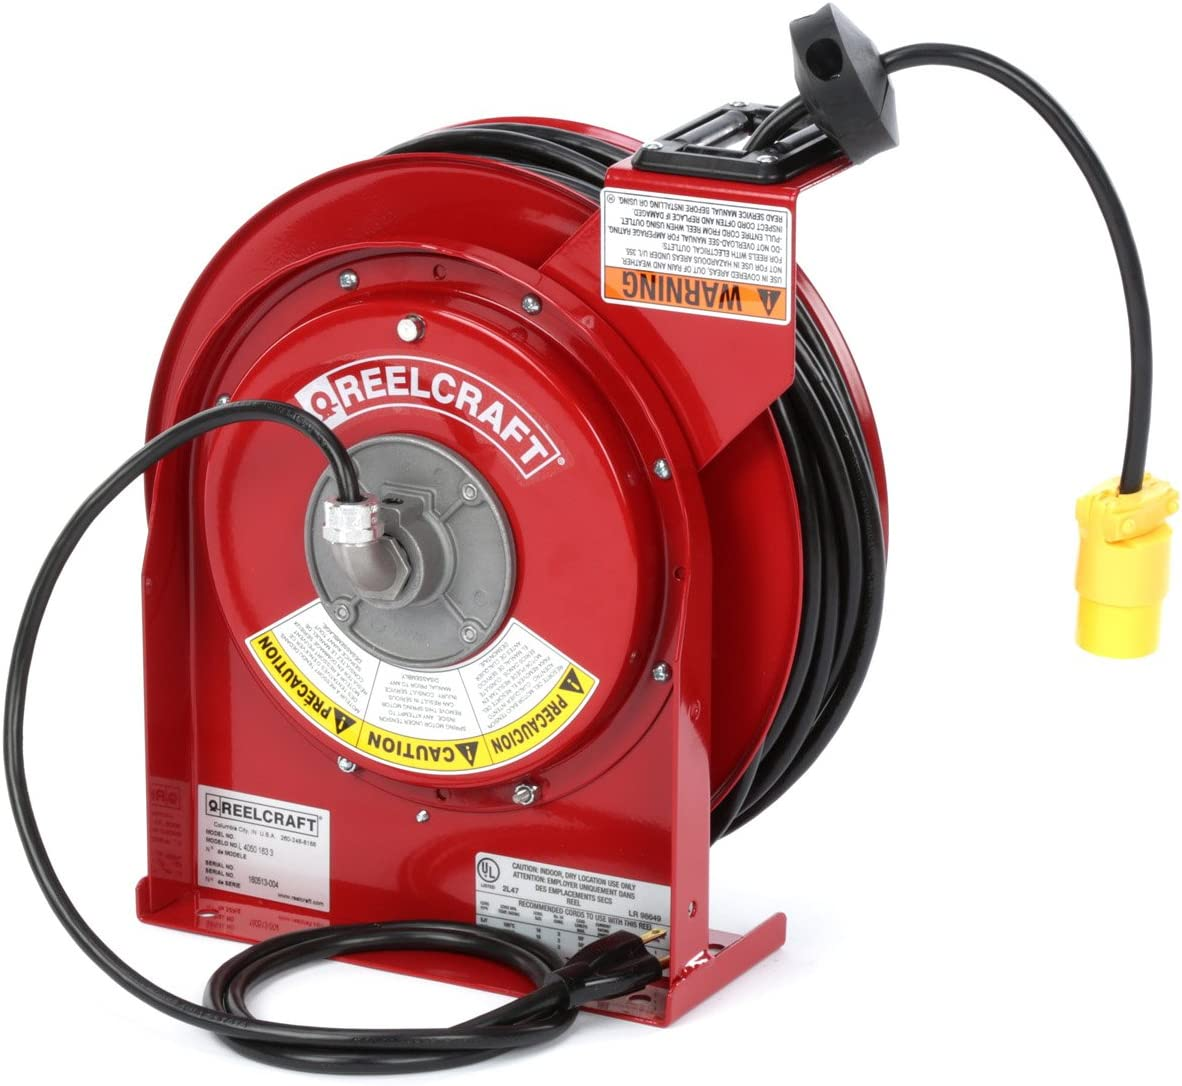 B0000225BA Reelcraft L-4545-123-3 Spring Driven Cord Reel with 45-Feet of 12/3 Cord and Single Outlet 717WVai8kpL